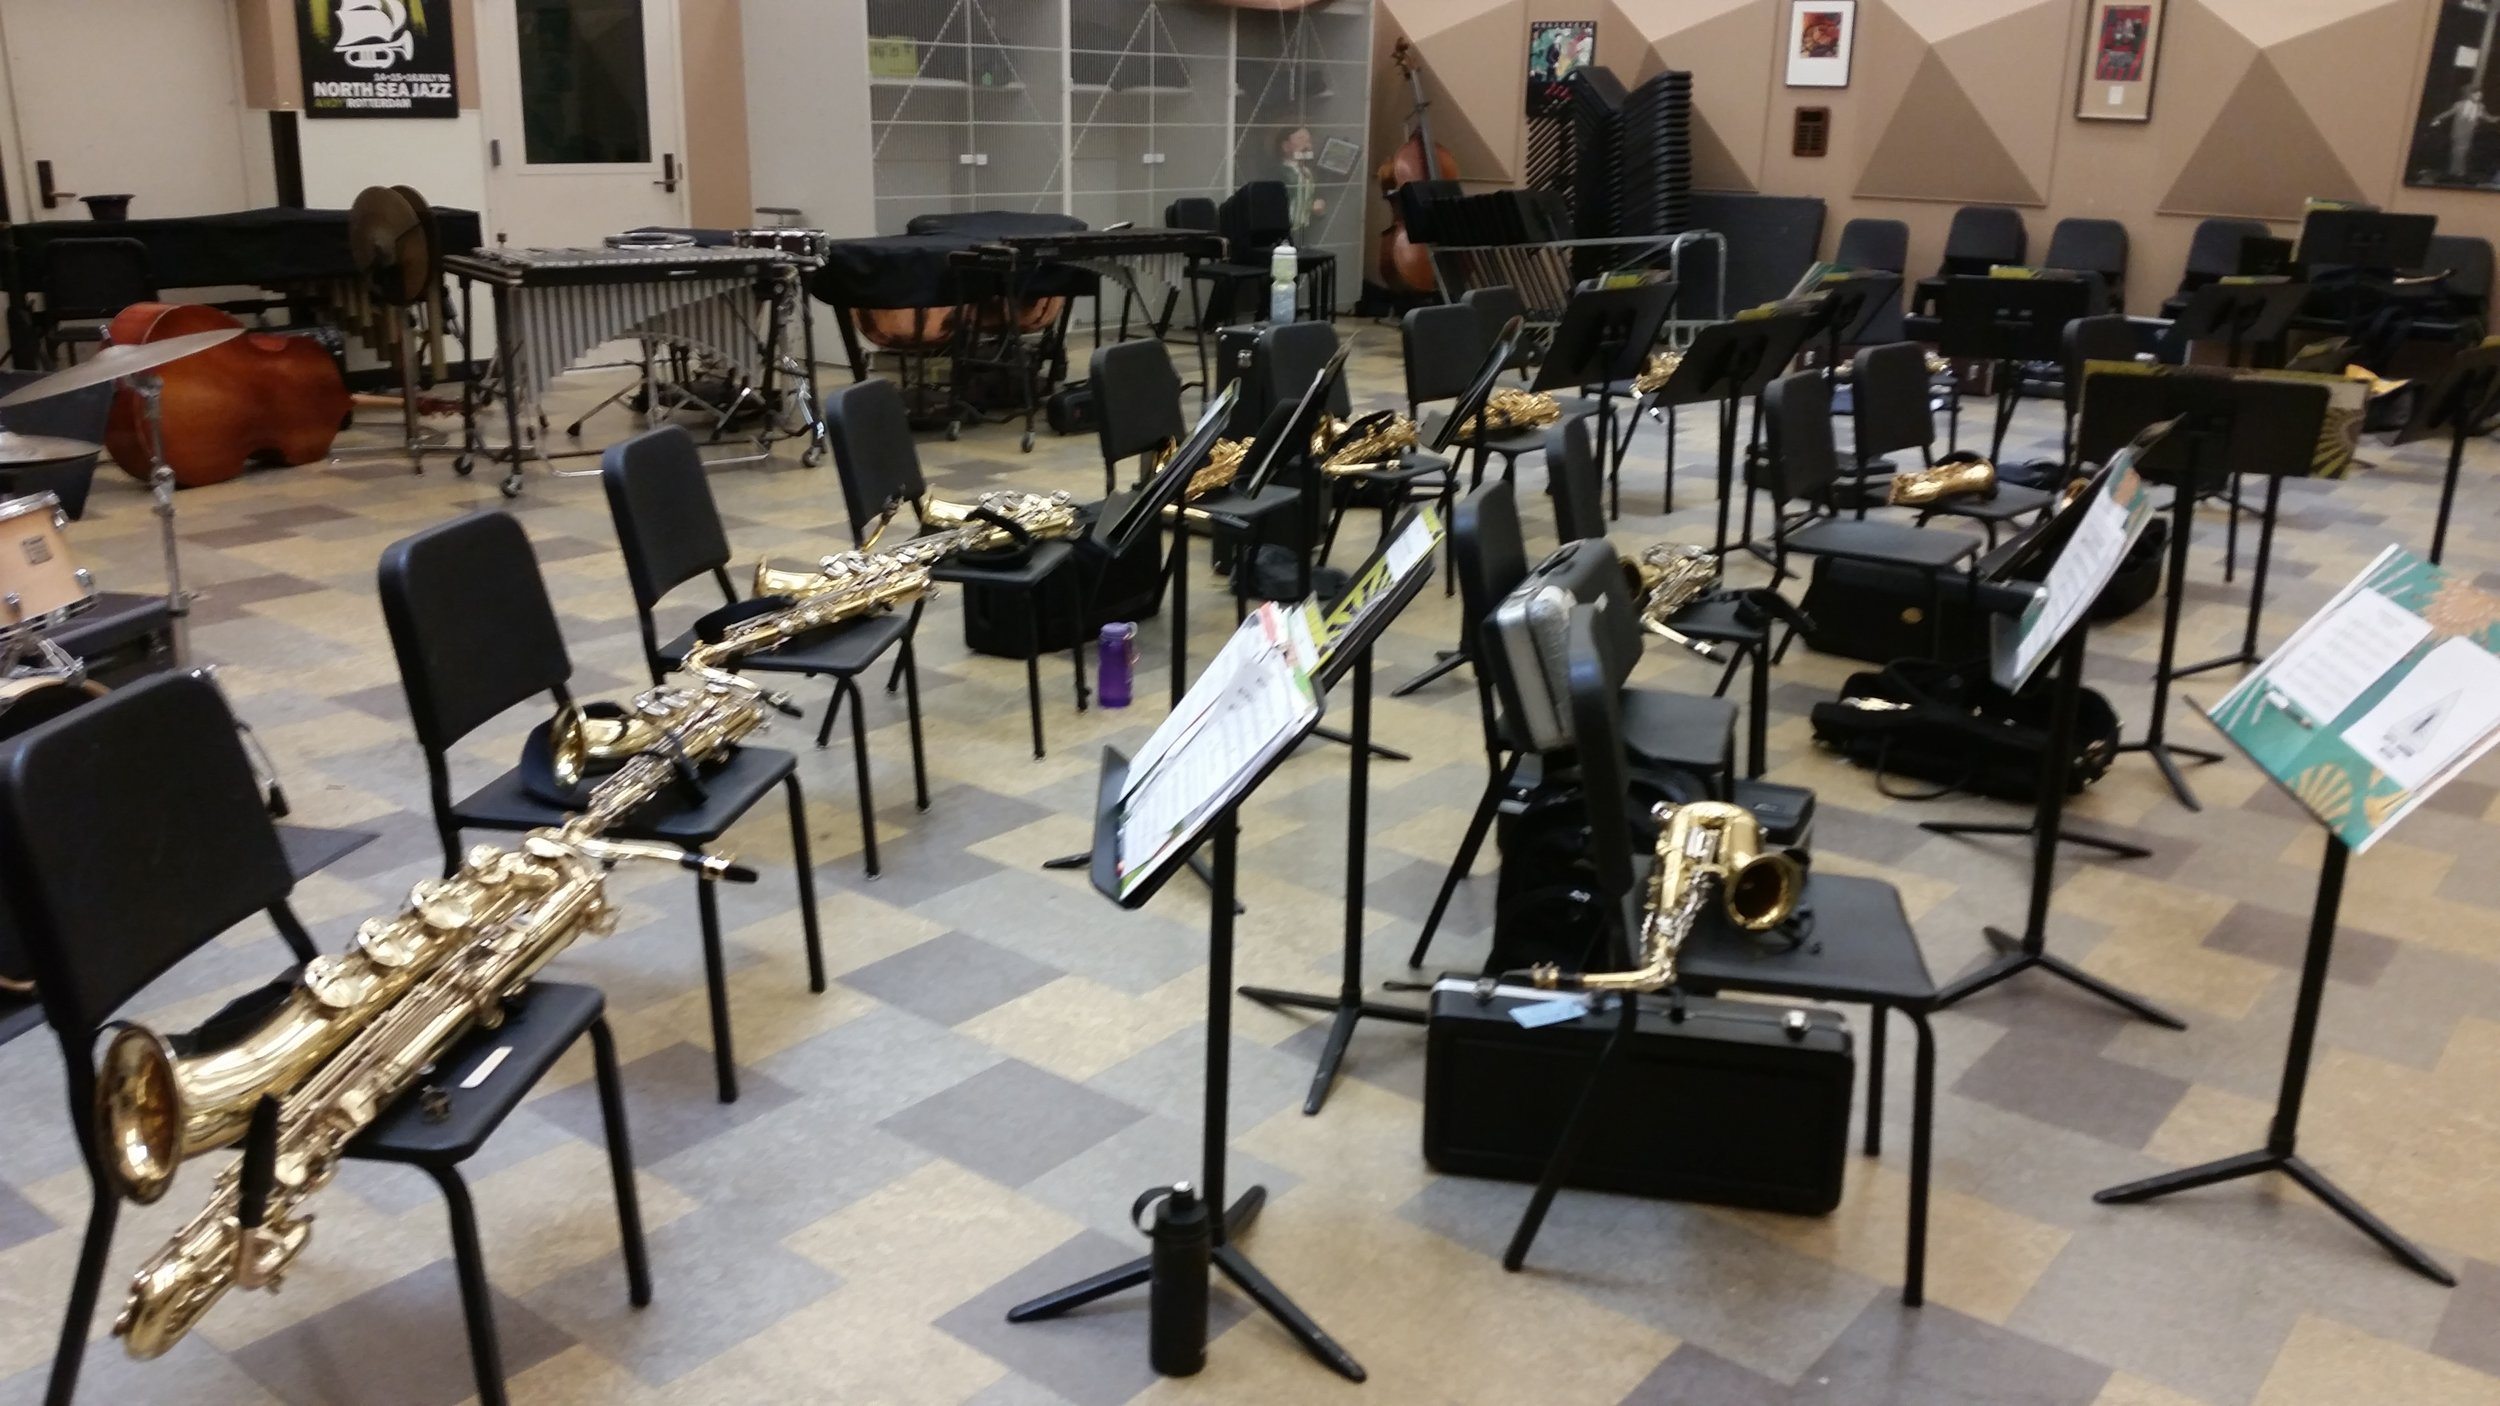 Students take a break for lunch, leaving behind an army of horns!